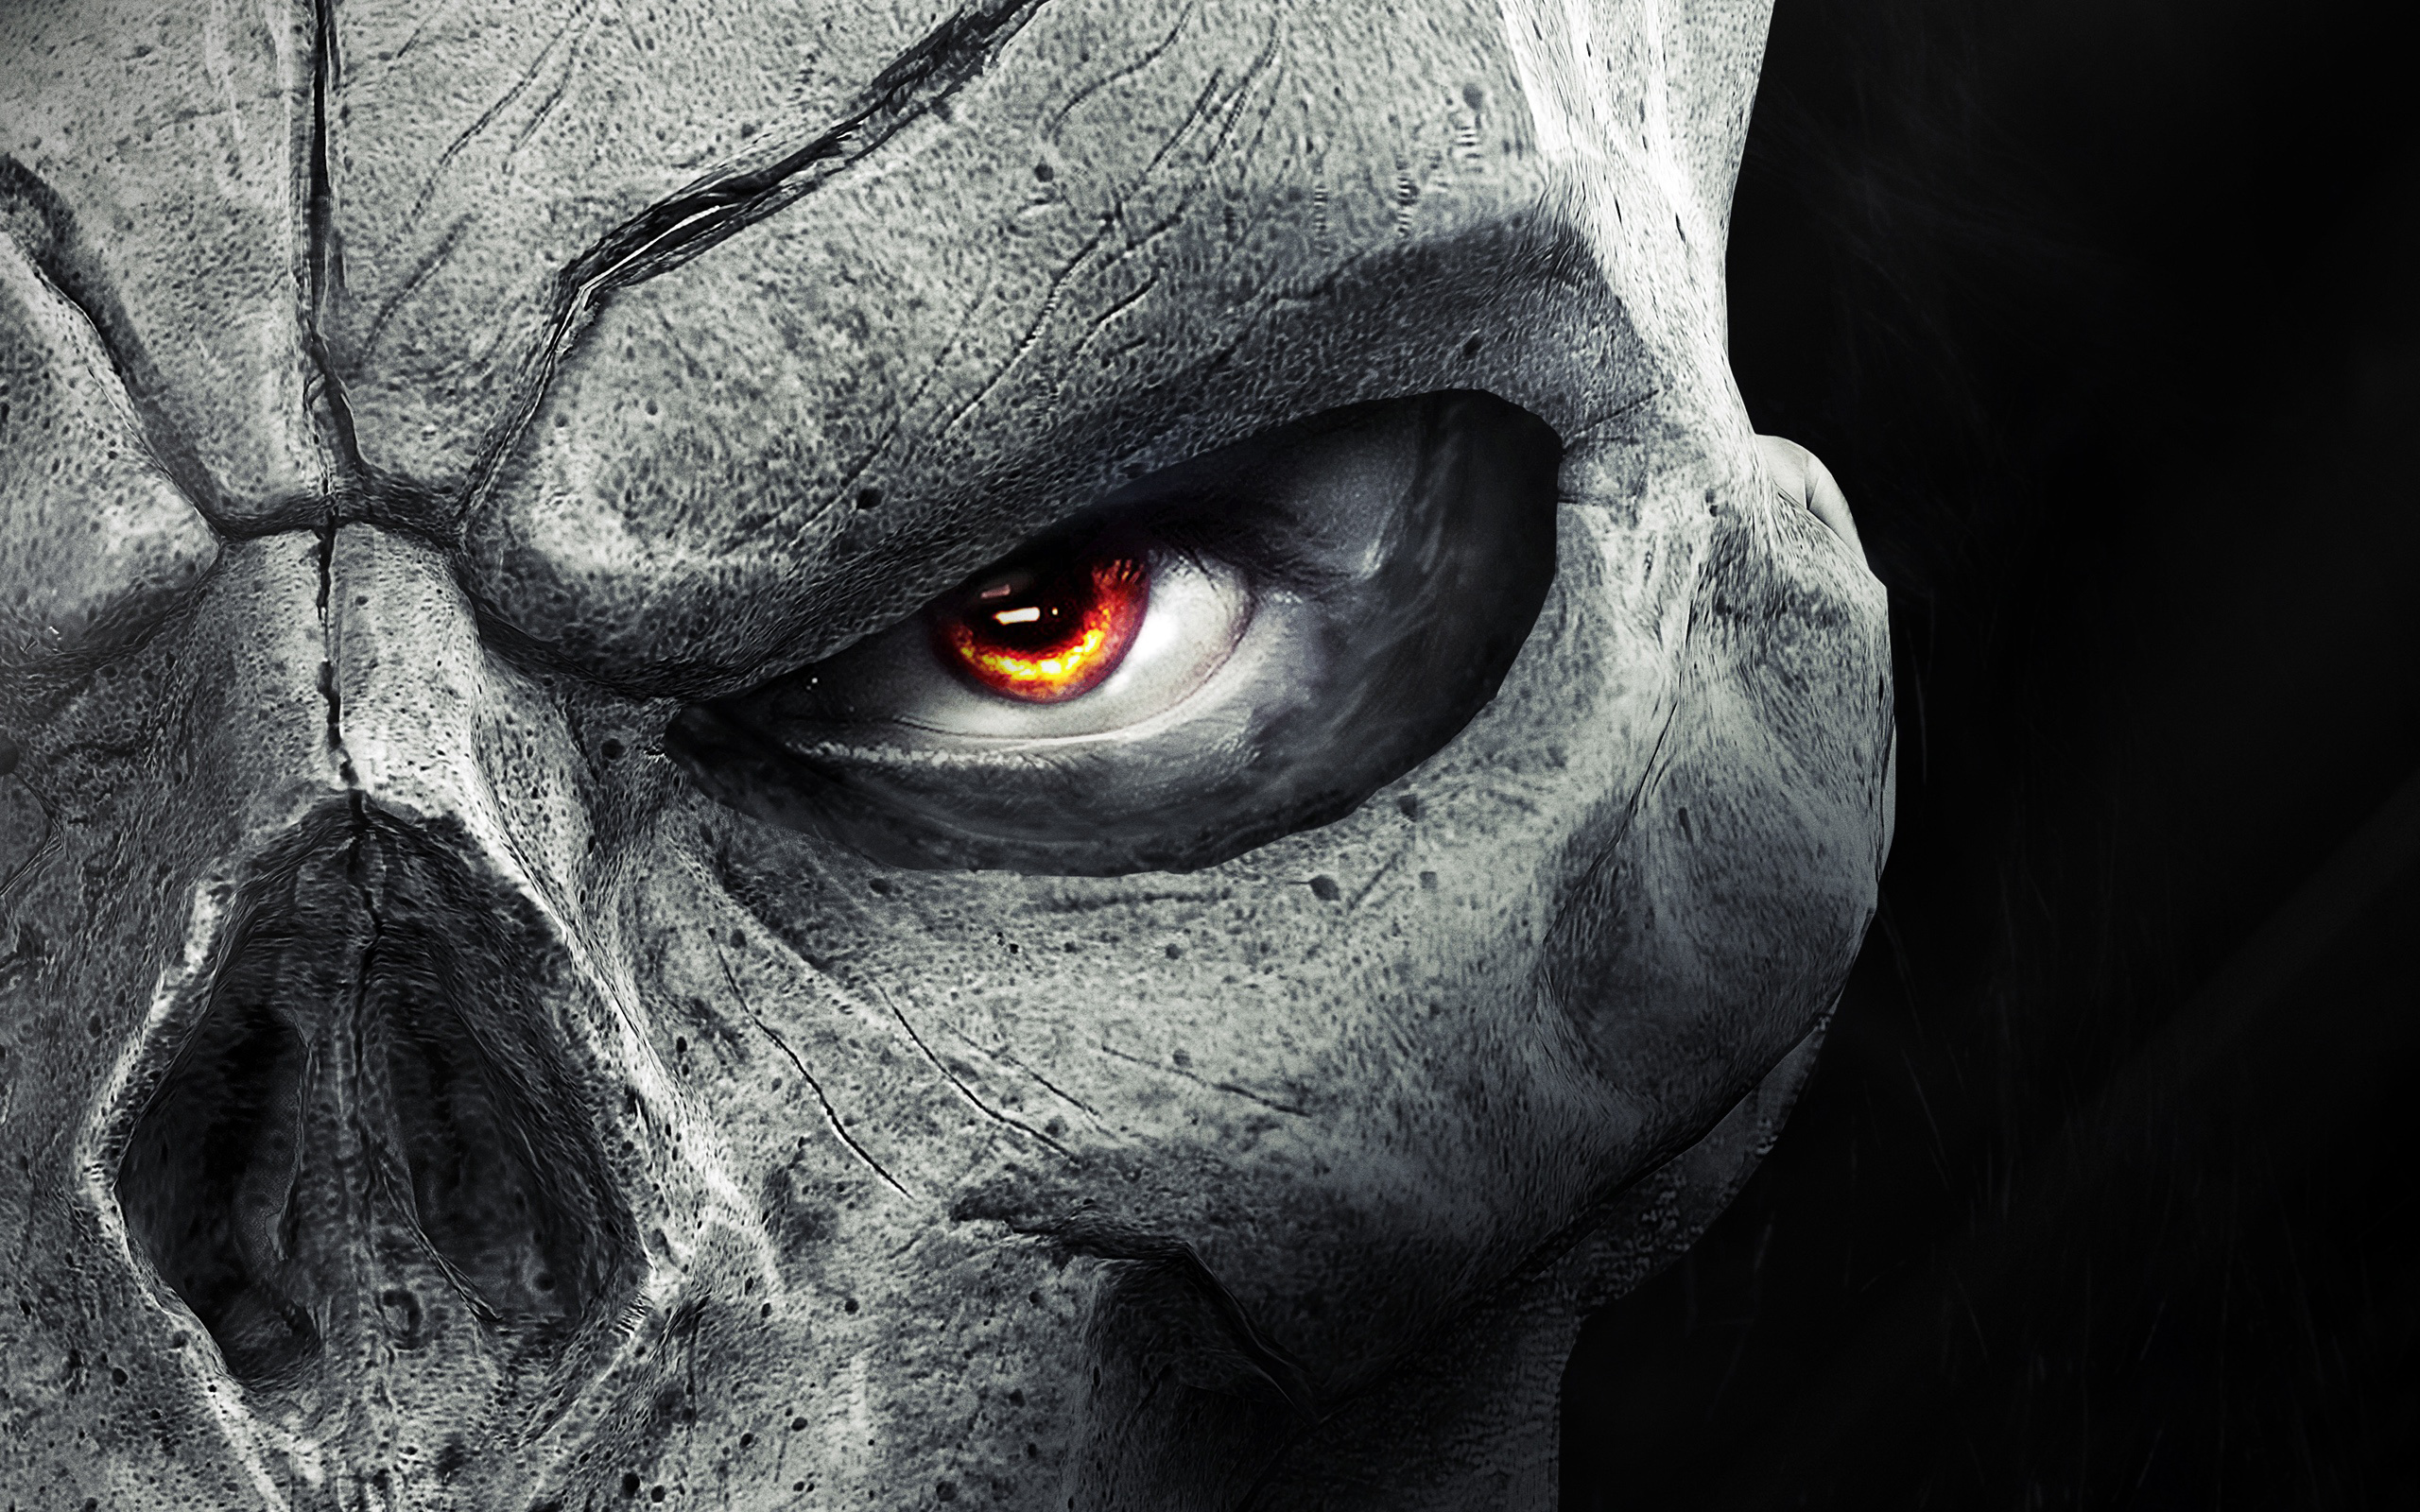 Darksiders 2 Wallpapers HD Wallpapers 2560x1600